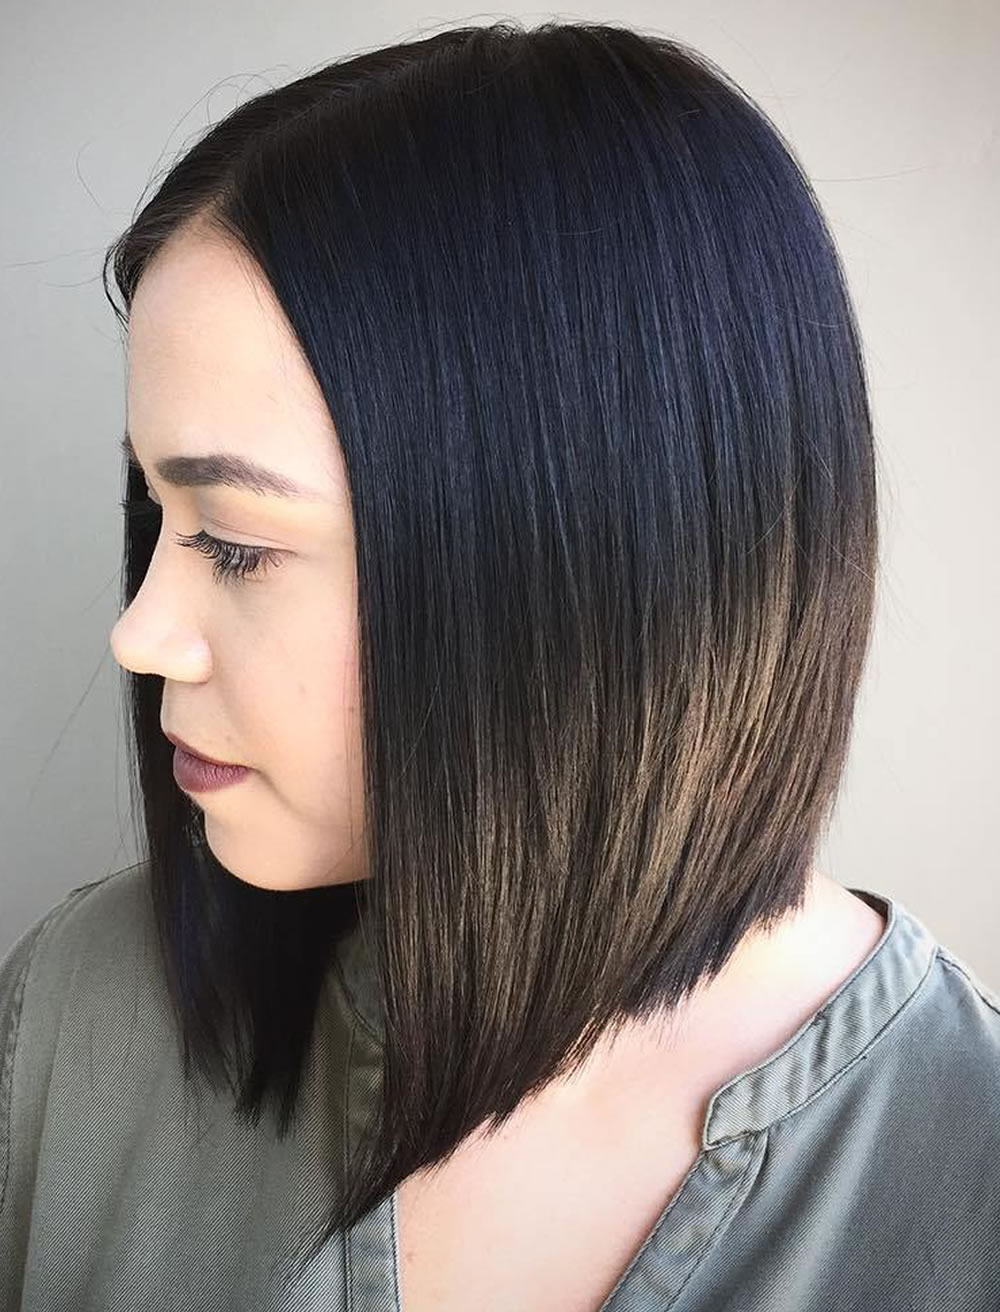 Long Bob Medium Straight Hair Style For Thin Hair – Hairstyles Pertaining To Favorite Medium Haircuts Straight Hair (View 9 of 20)